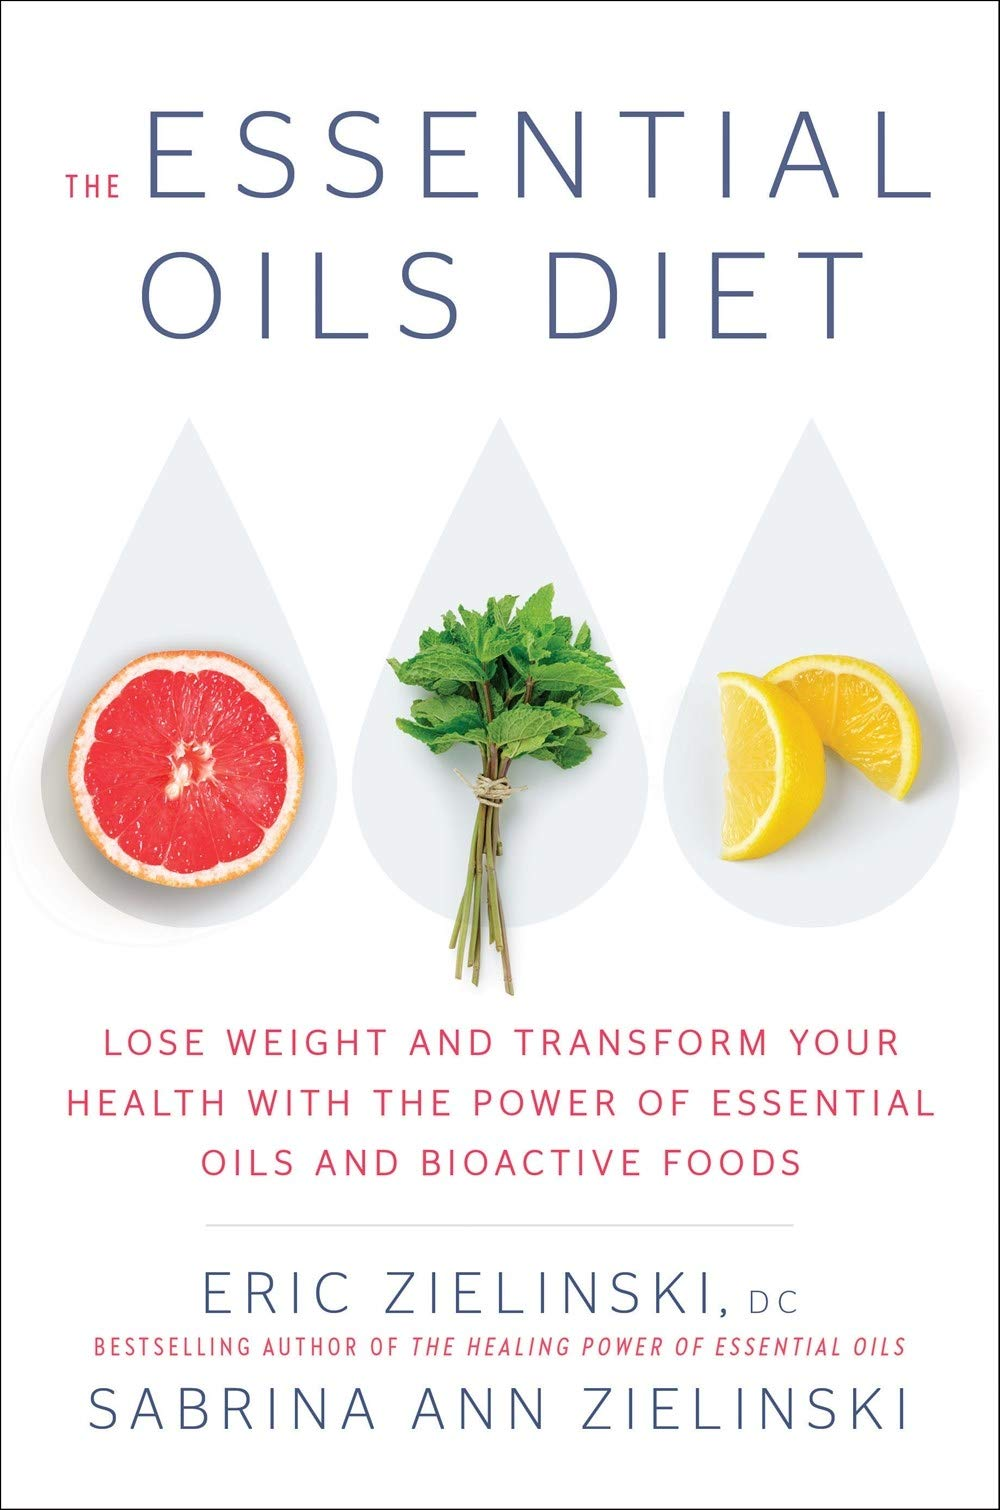 The Essential Oils Diet Lose Weight And Transform Your Health